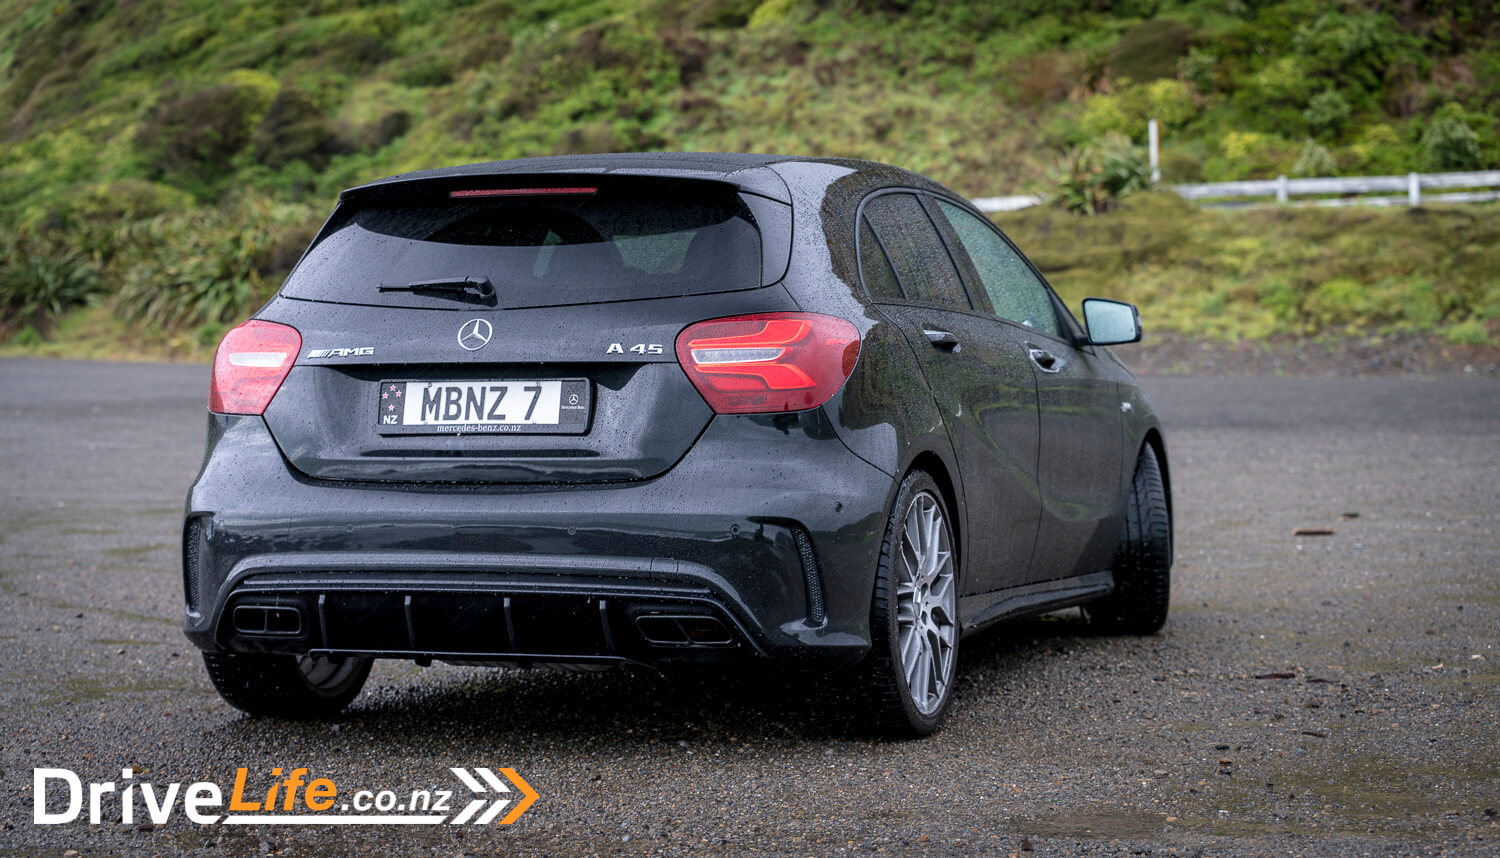 car-review-mercedesbenz-a45-amg-12